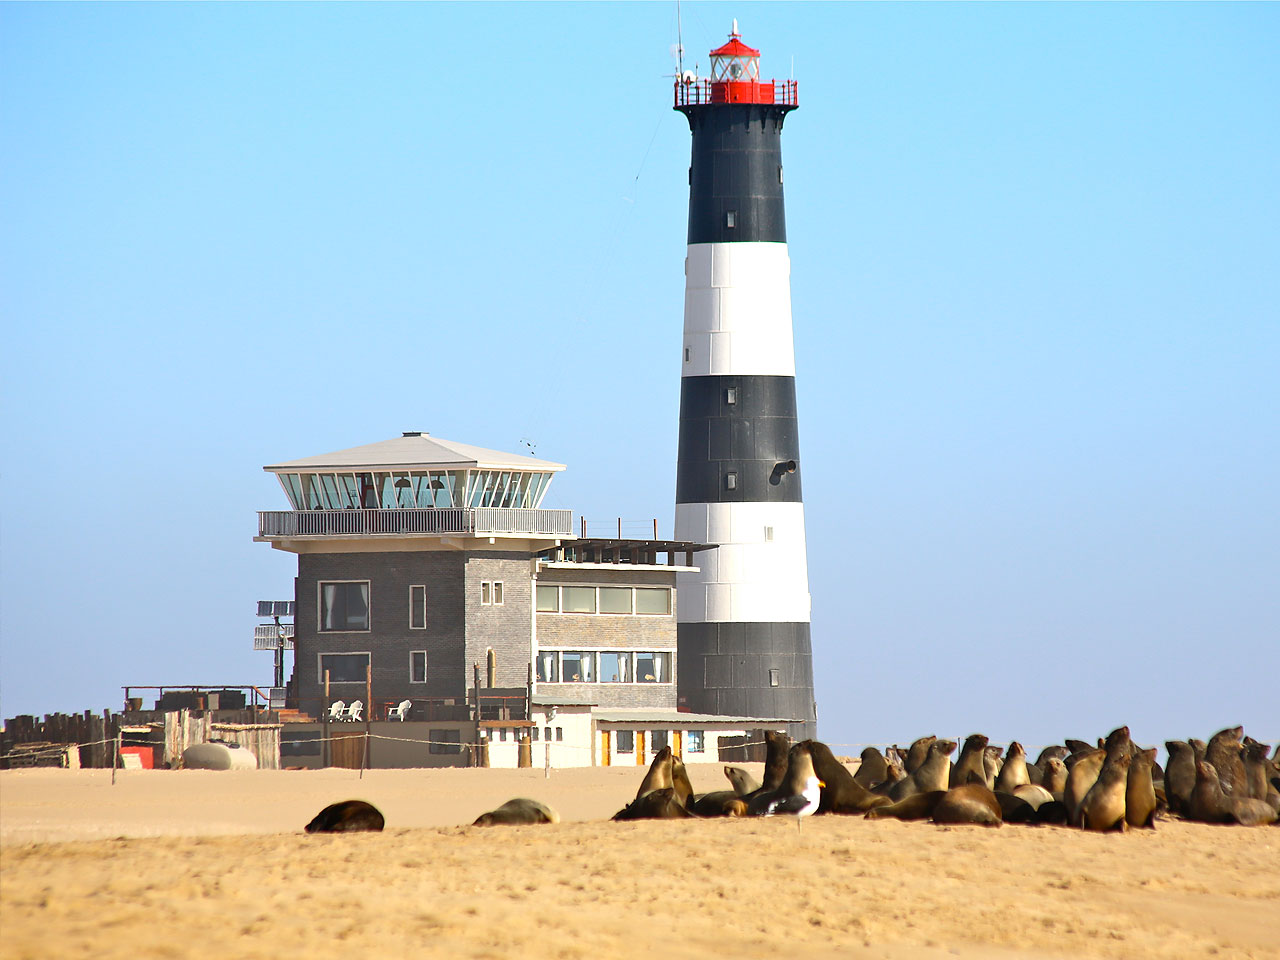 The lighthouse and Pelican Point Lodge on Pelican Point with seals.